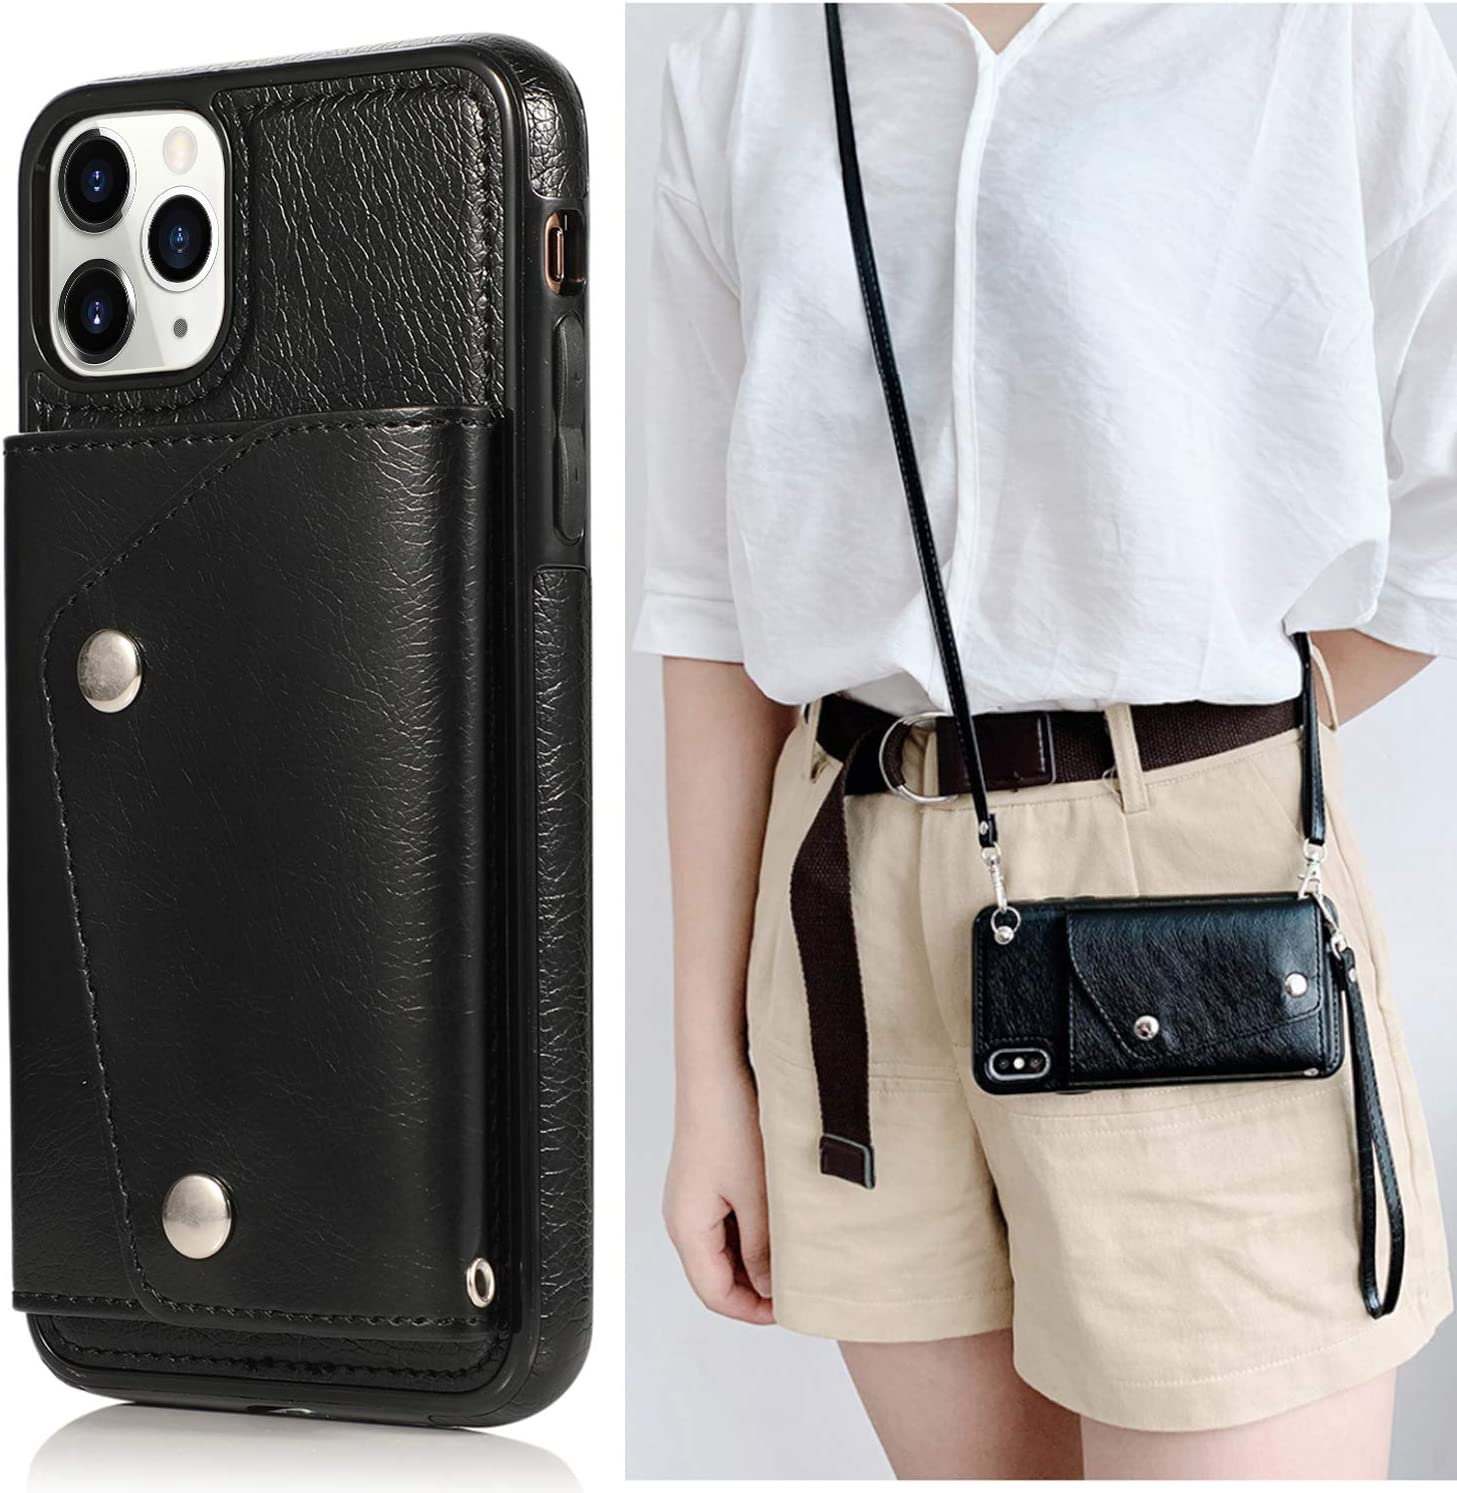 LUVI for iPhone 11 Pro Card Holder Case with Neck Strap Crossbody Chain Handbag Wrist Strap Protective Cover with Credit Card Holder Slot PU Leather Wallet Case for iPhone 11 Pro Black